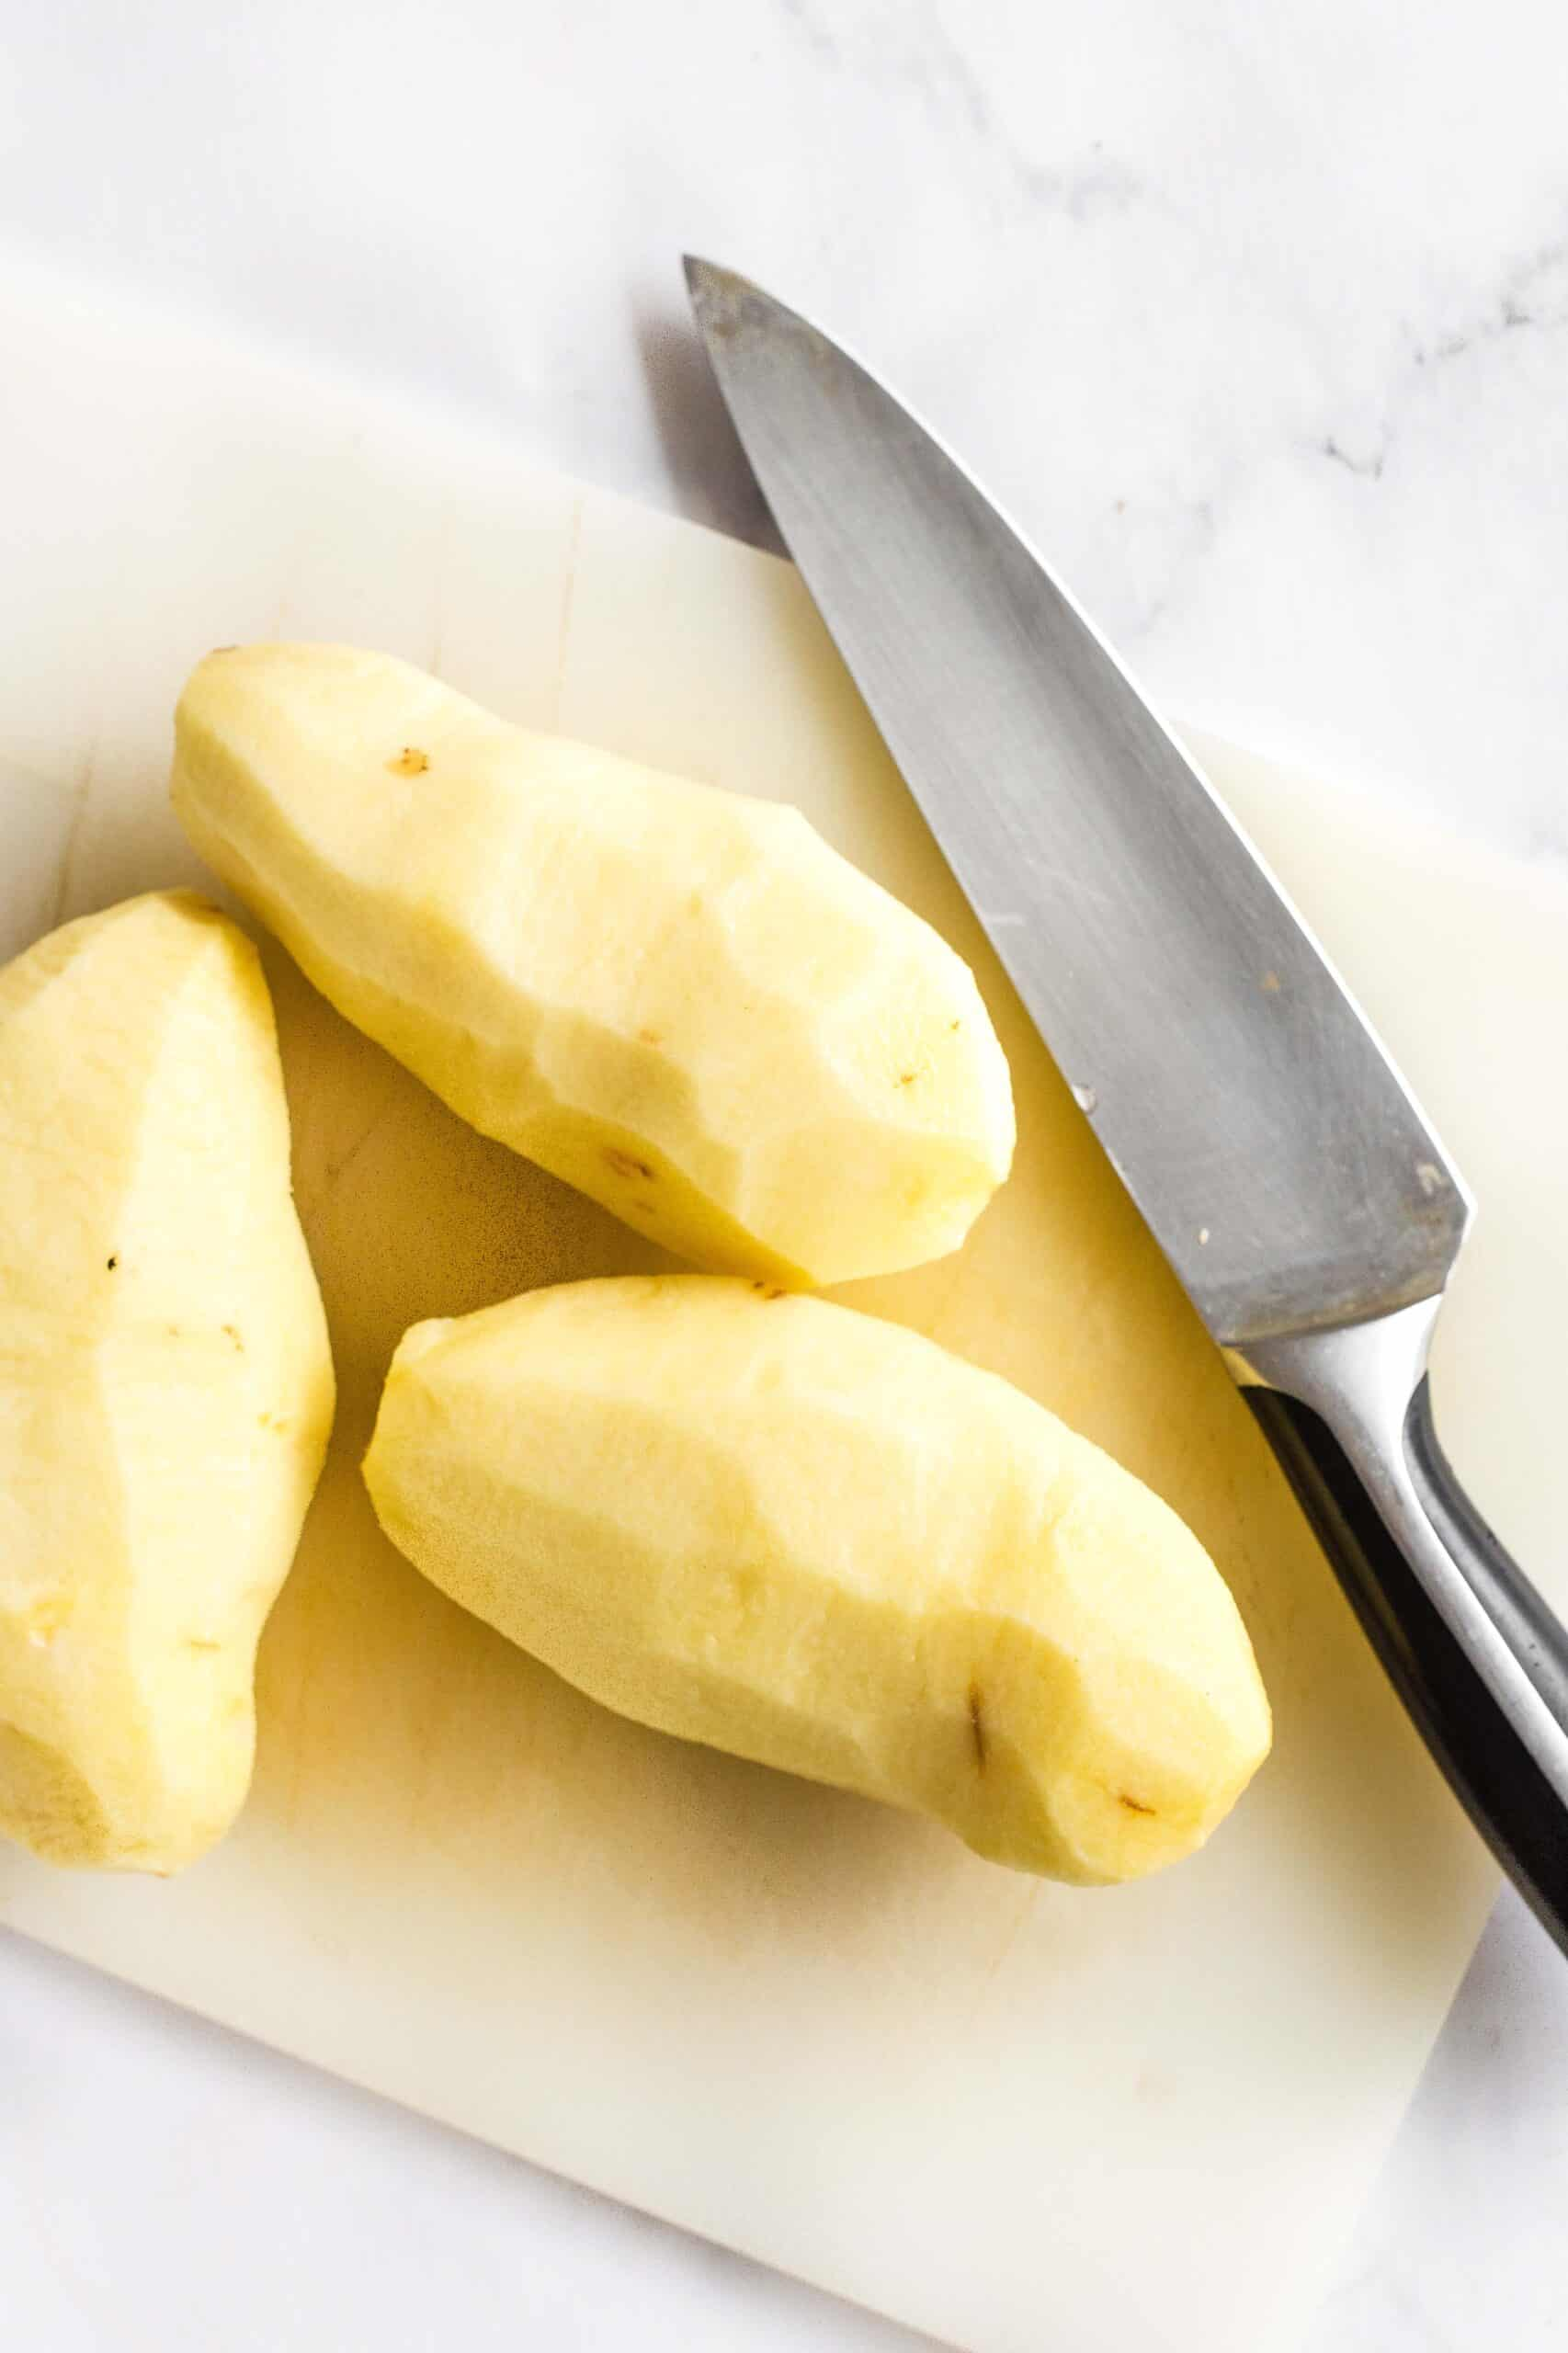 Peeled potatoes and a knife on a chopping board.